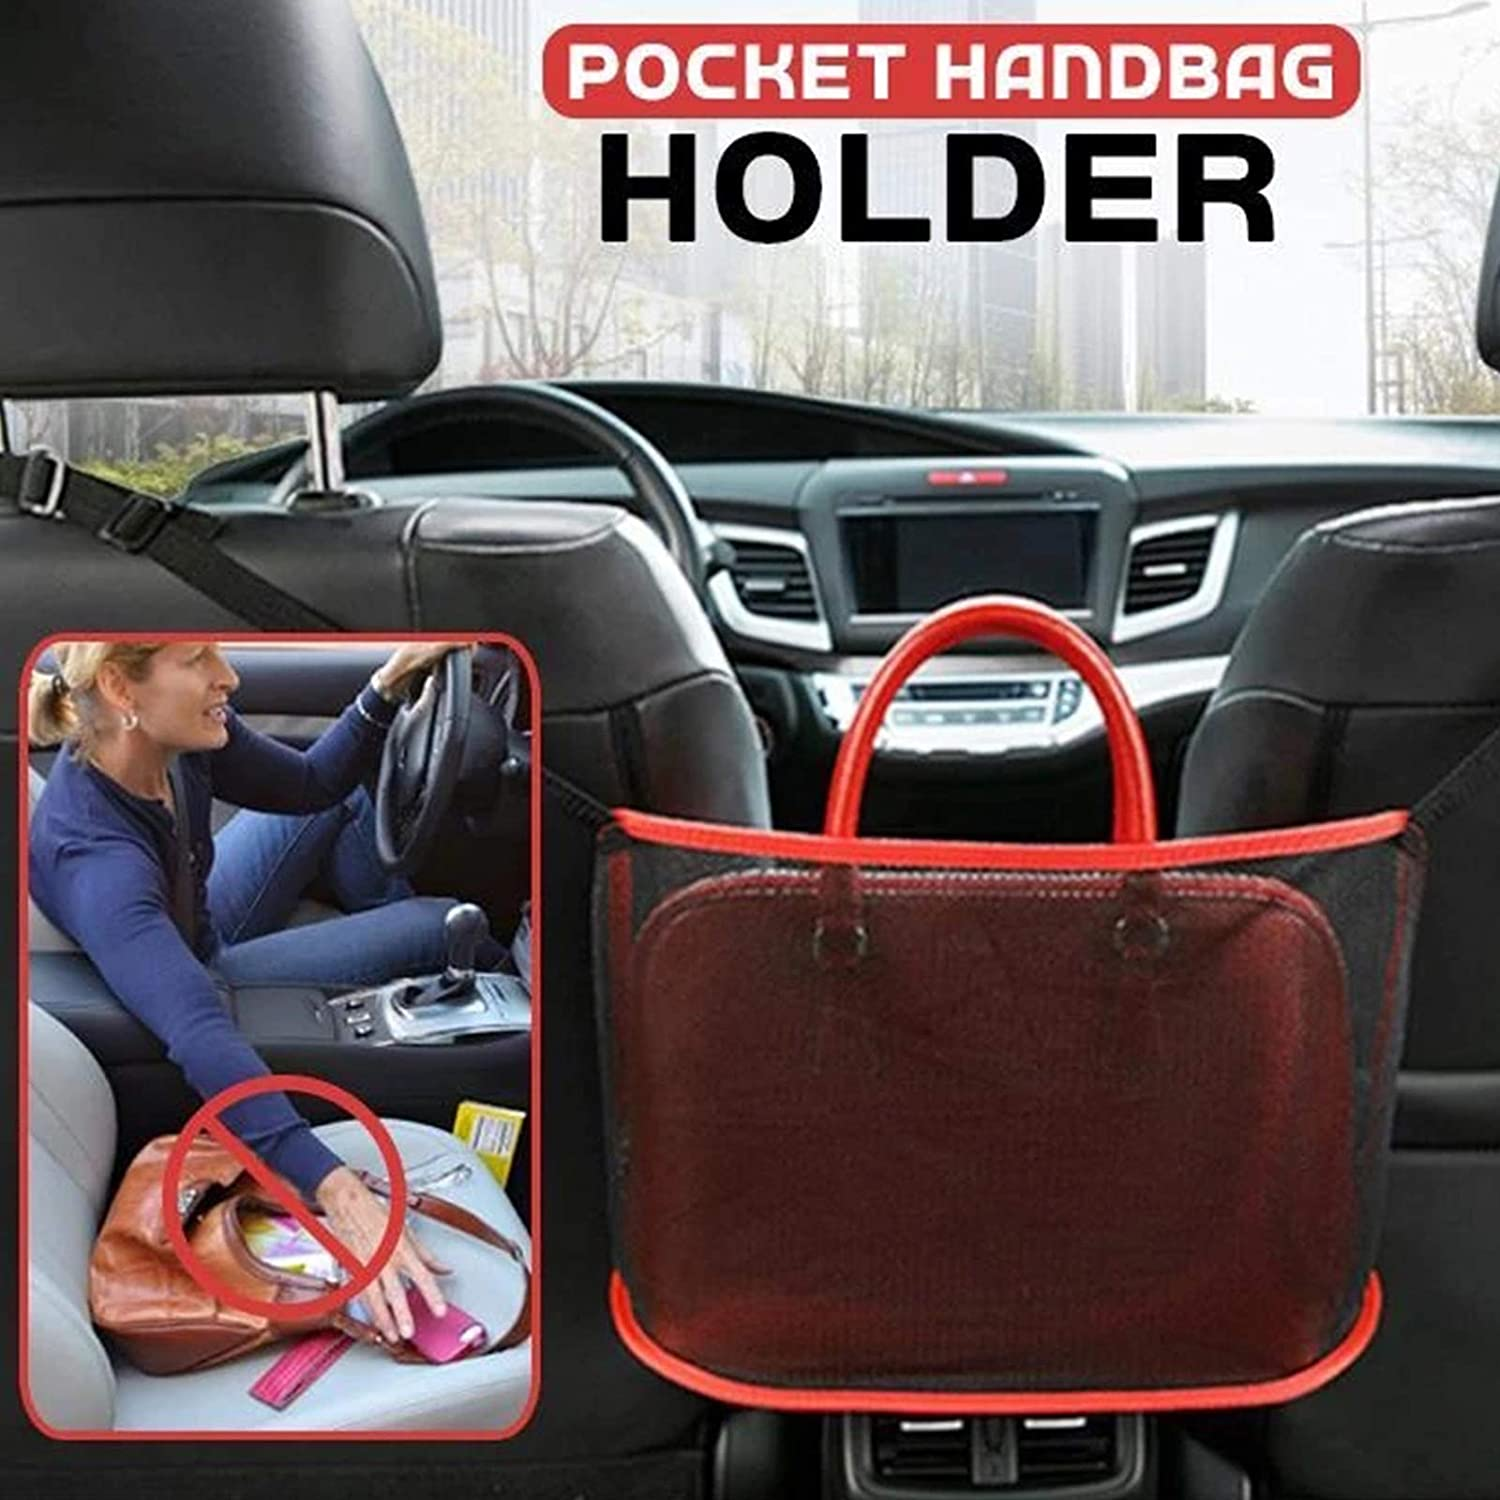 Durable Car Net Pocket Handbag Holder for Handbag Bag Documents Phone Valuable Items SDLAJOLLA Car Net Pocket Handbag Holder